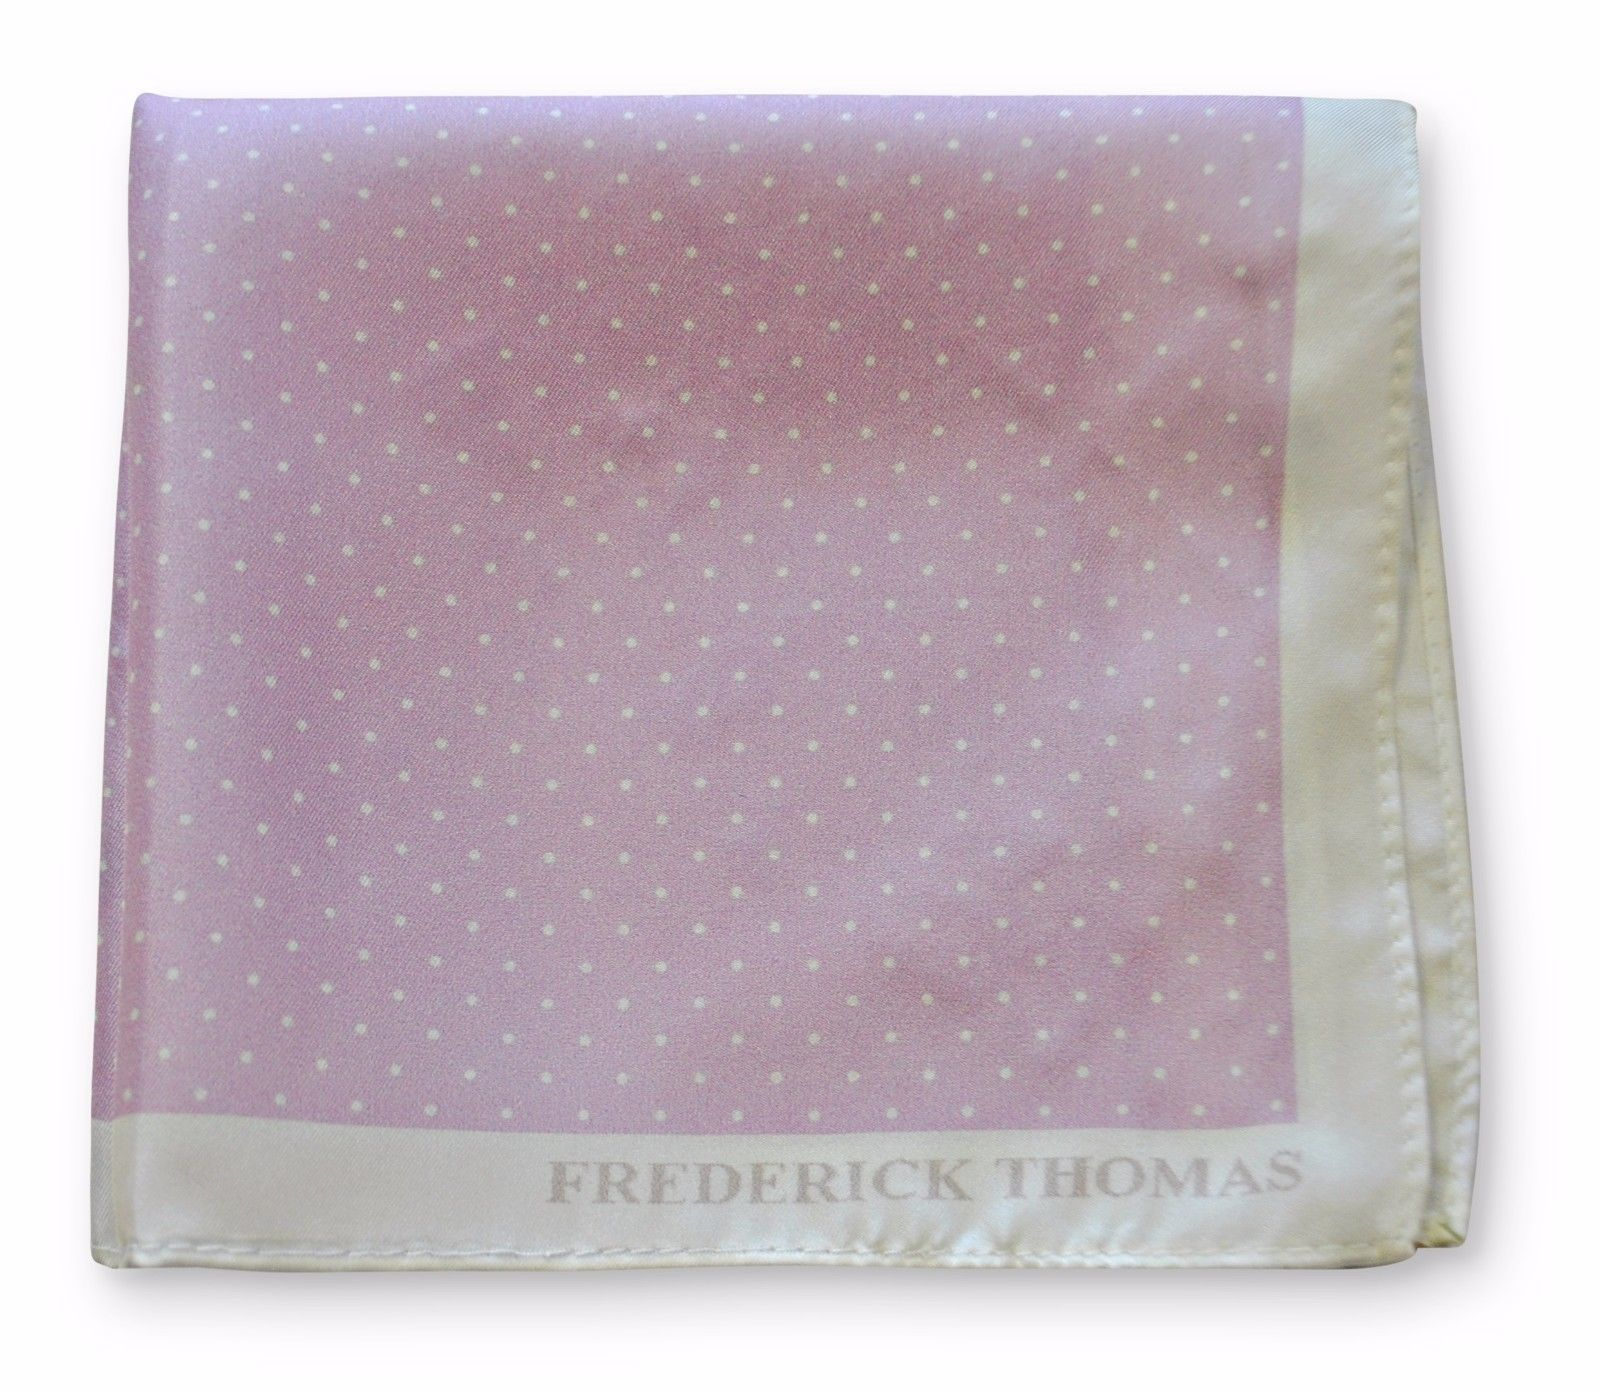 Frederick Thomas 100% silk lilac & pin spotted pocket square handkerchief FT3357